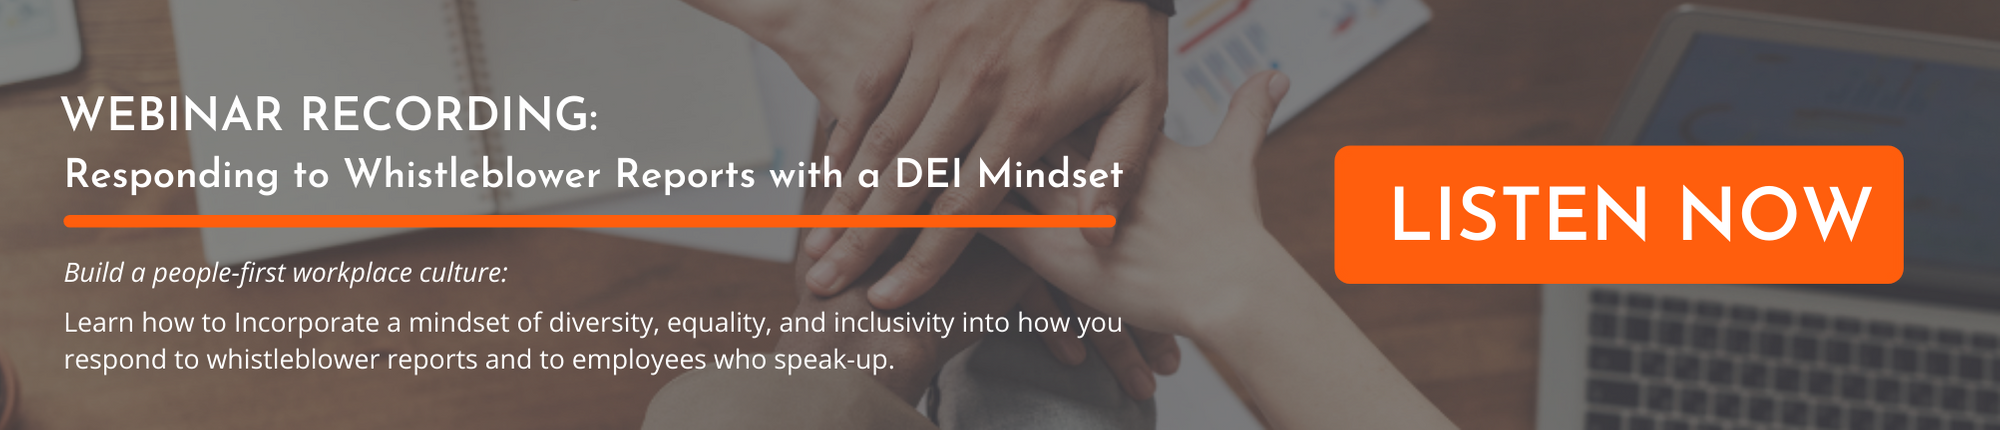 Webinar Recording: Responding to Whistleblower Reports with a DEI Mindset